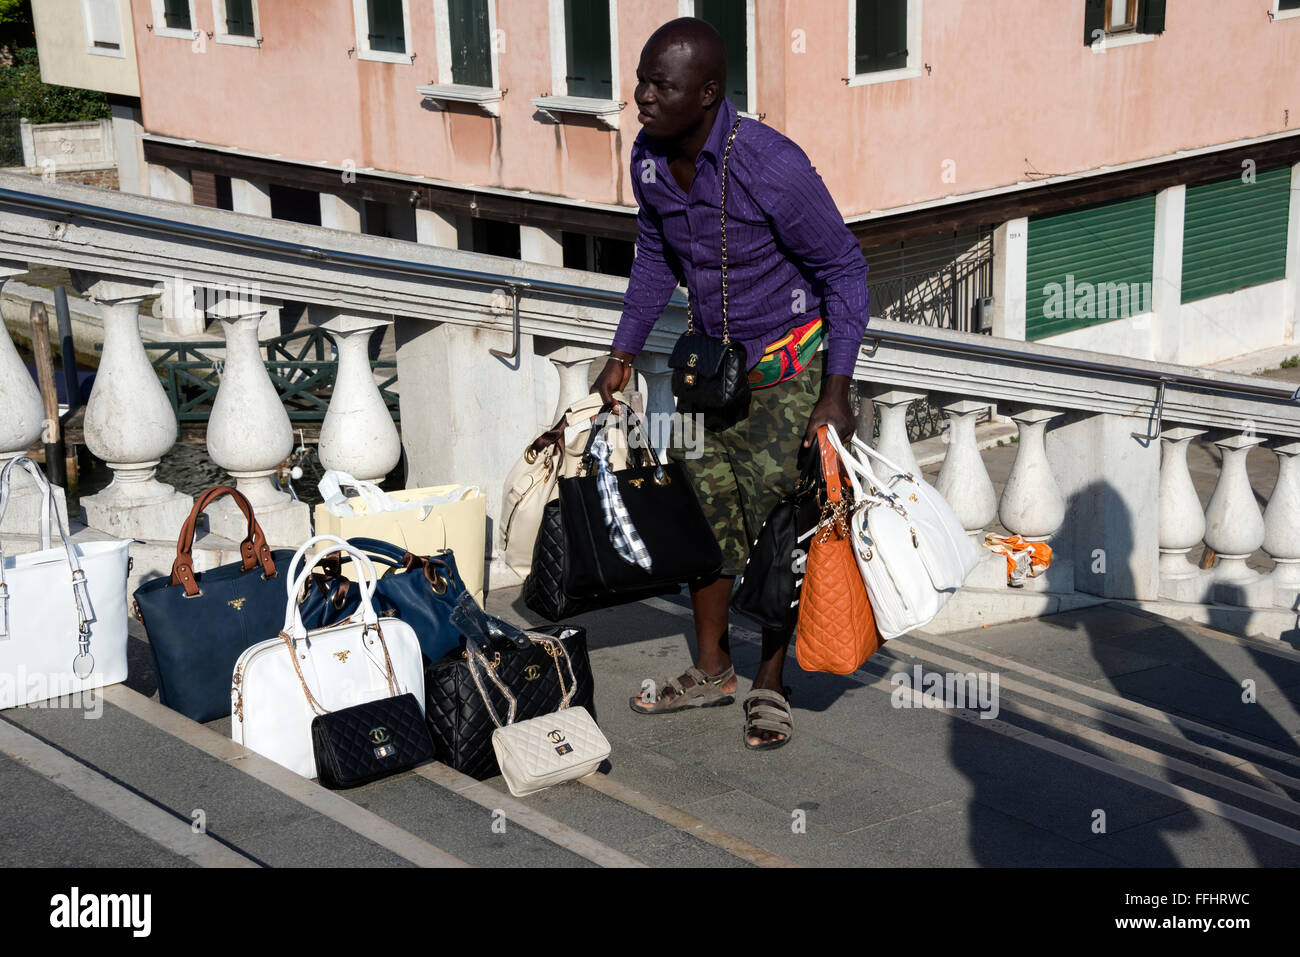 f322c4896d7d An African illegal immigrant street vendor selling counterfeit ladies  handbags such as Gucci